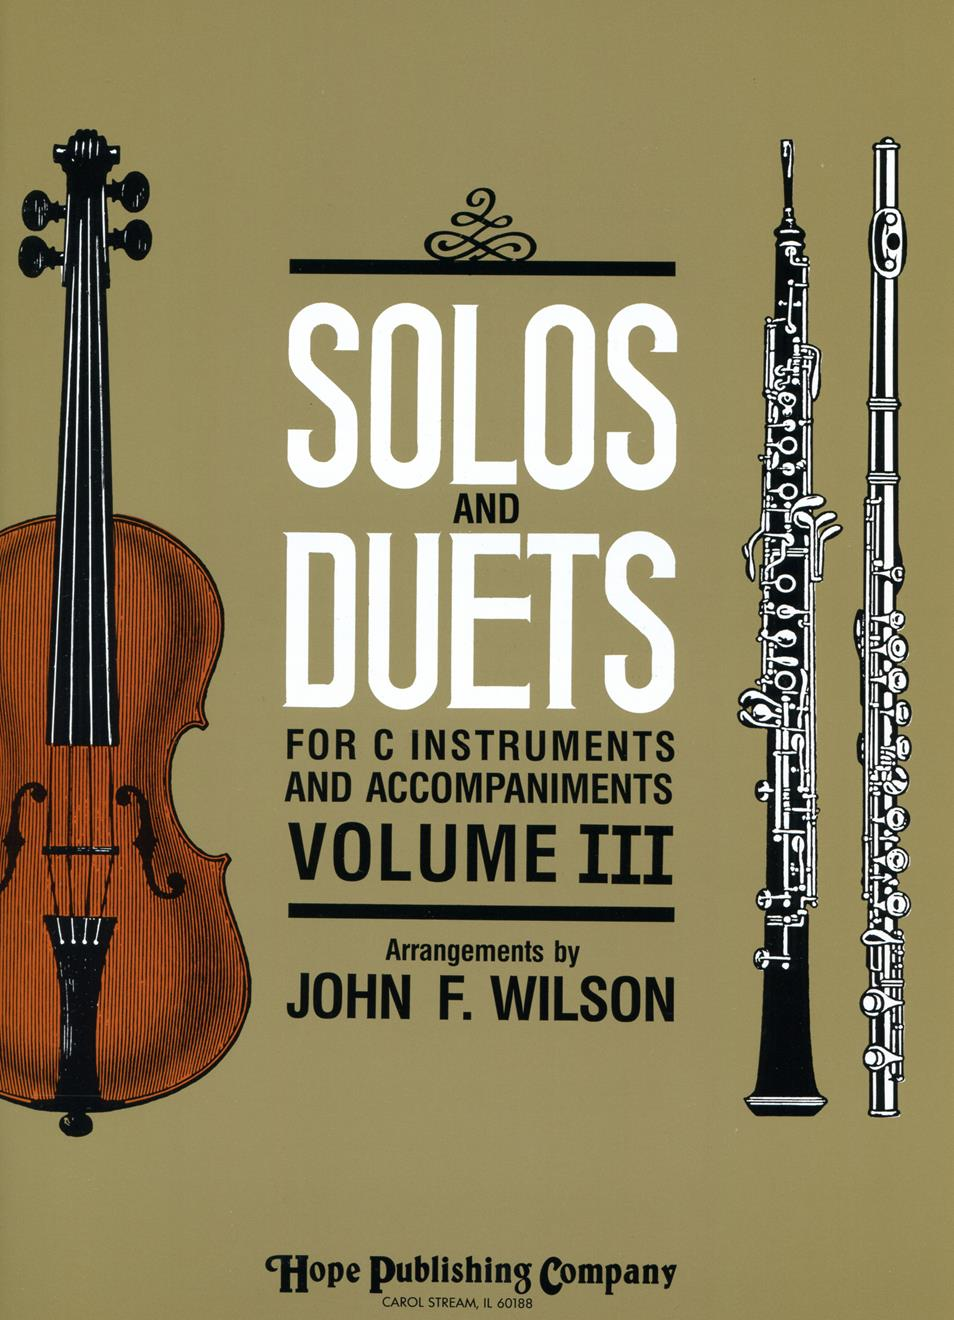 Solos and Duets for C Instruments Vol.III Cover Image